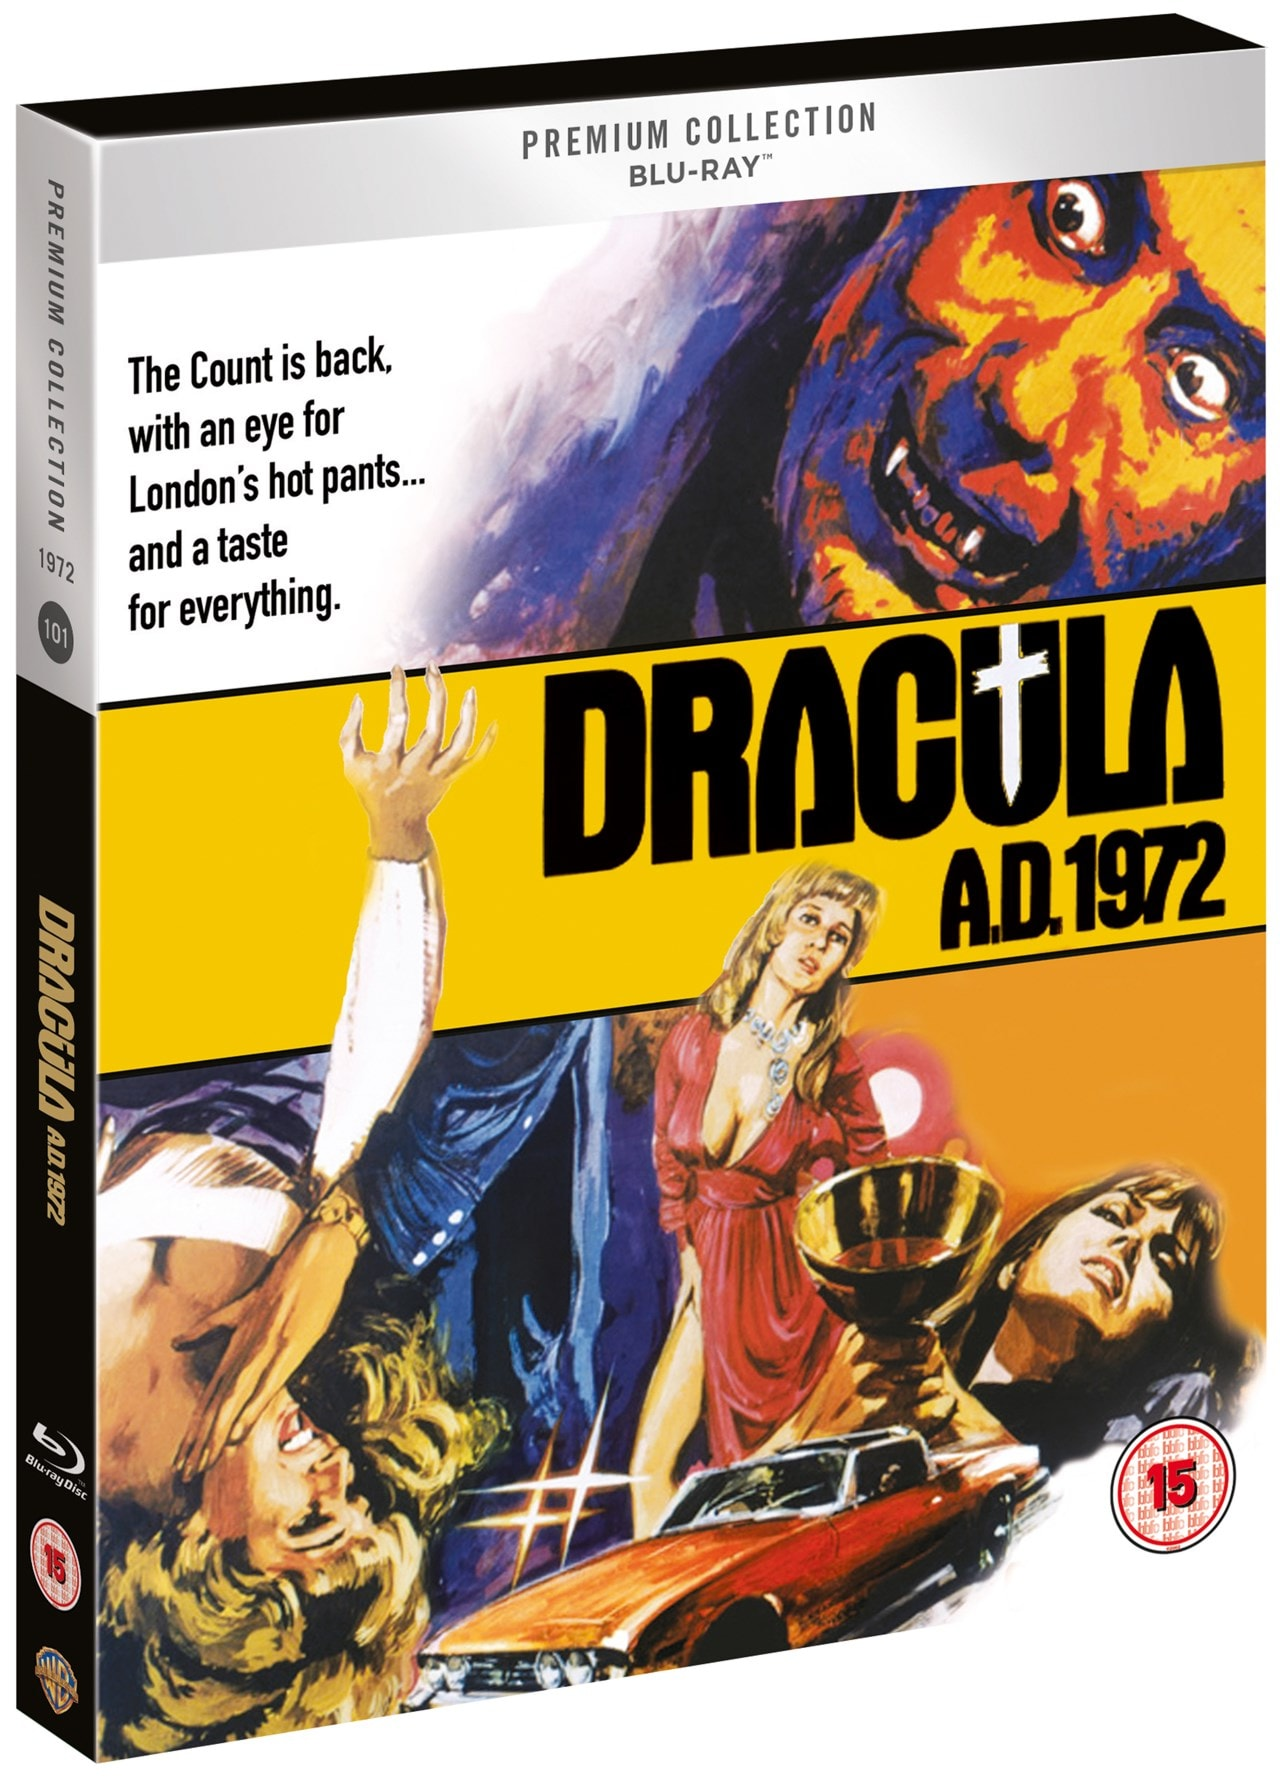 Dracula A.D. 1972 (hmv Exclusive) - The Premium Collection - 2